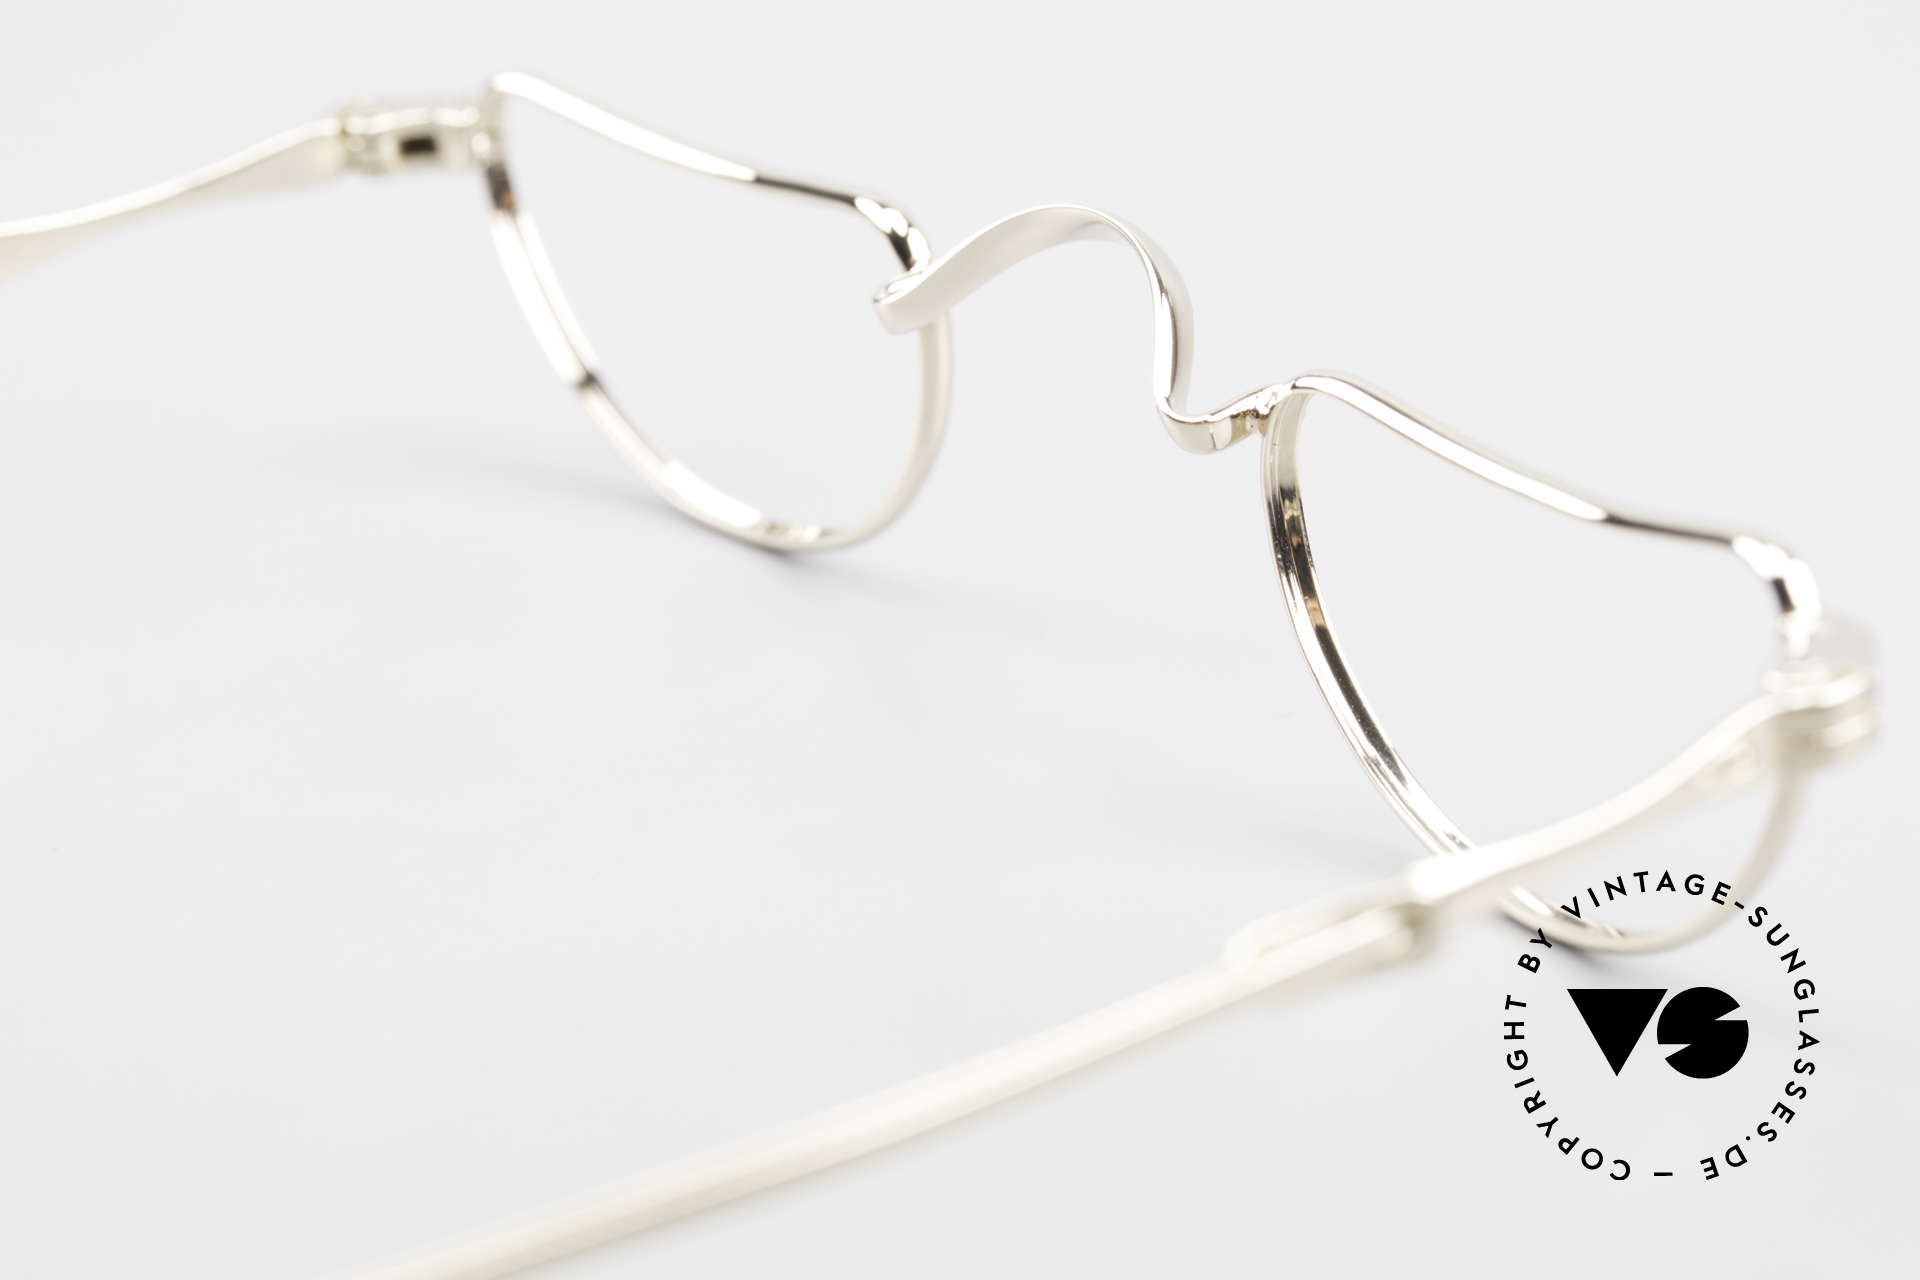 Lunor Goldbrille Solid Gold Glasses 16ct Frame, Size: extra small, Made for Men and Women